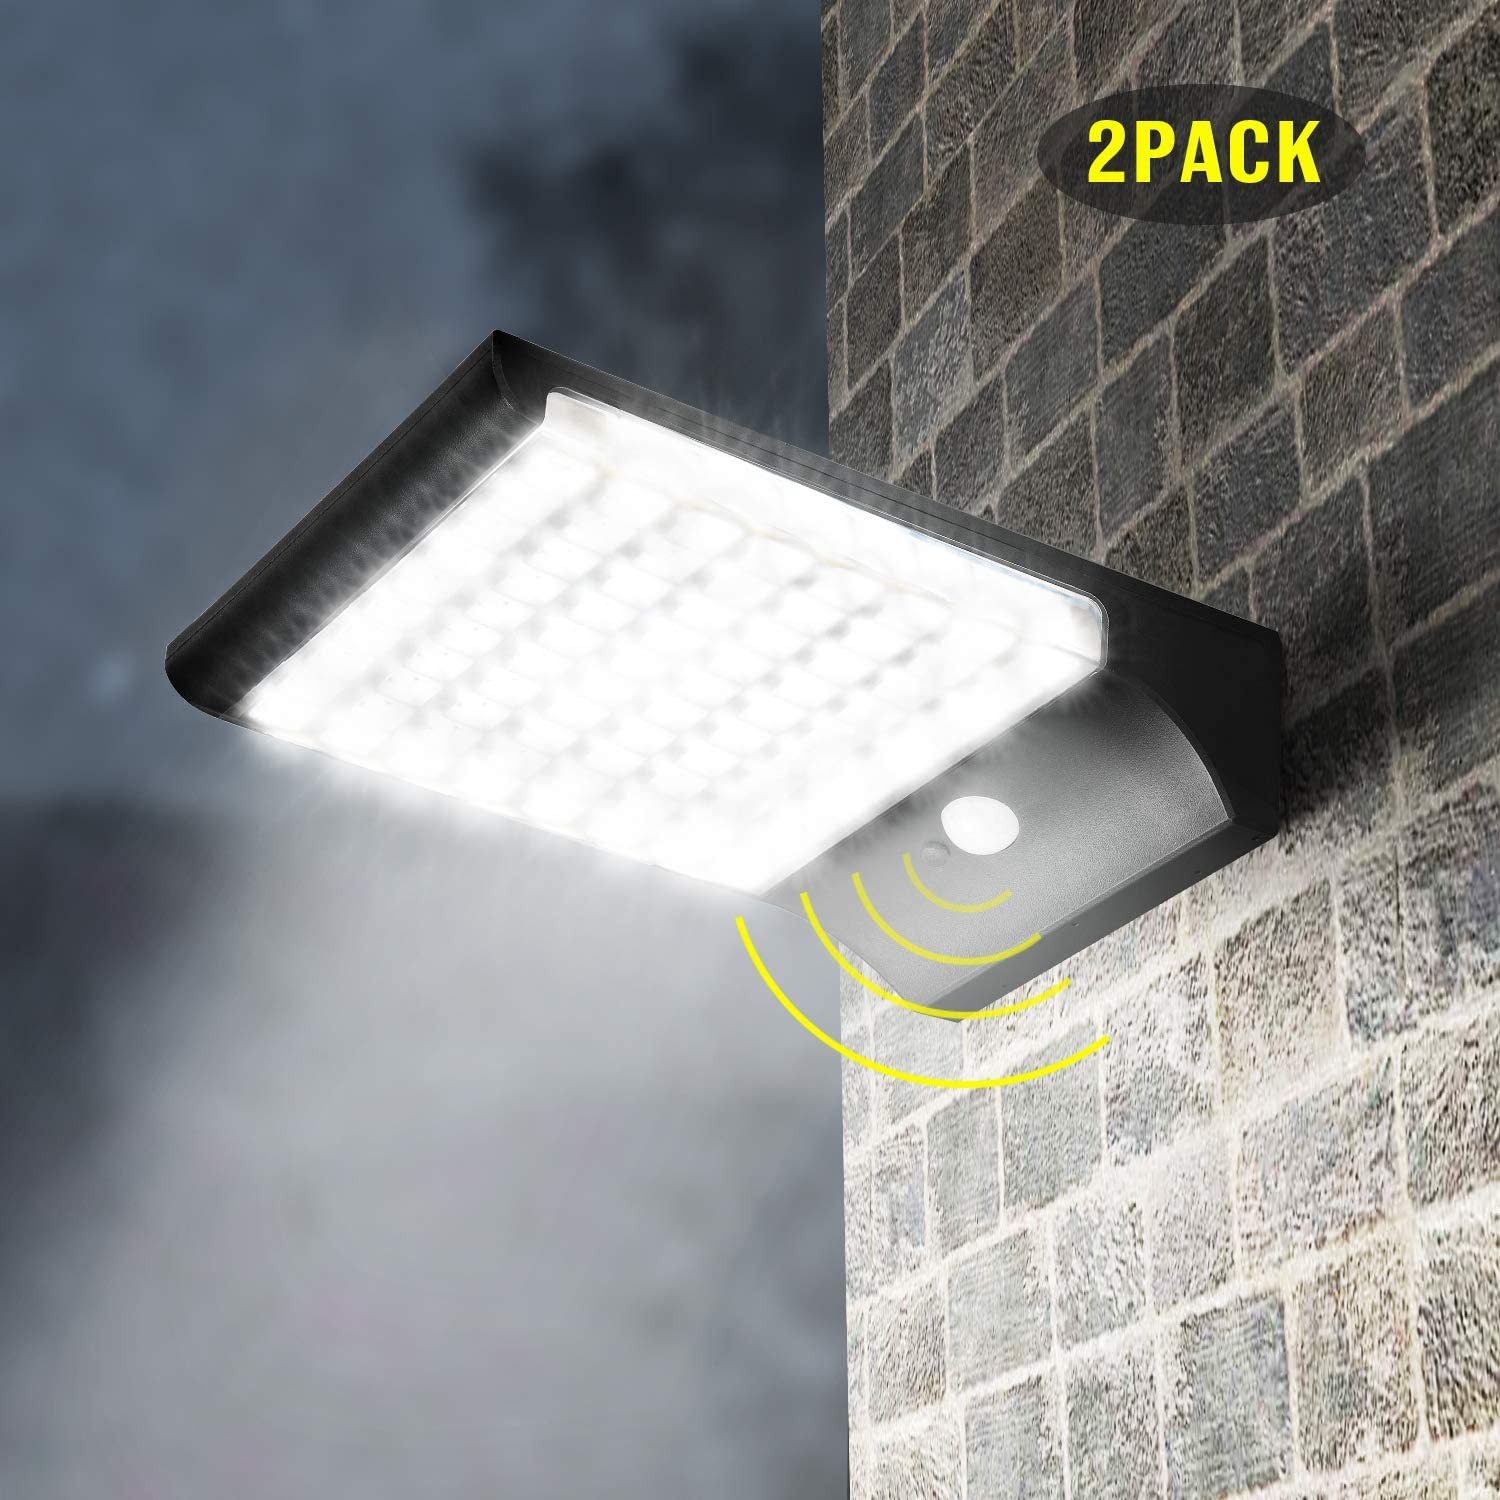 Solar Motion Lights Outdoor JACKYLED 94 LED Solar Lights 1500LM Super Bright Solar Powered Security Light with Larger Battery Capacity for Patio Garden Gutter Porch Garage Pathway Barn 2-Pack Black